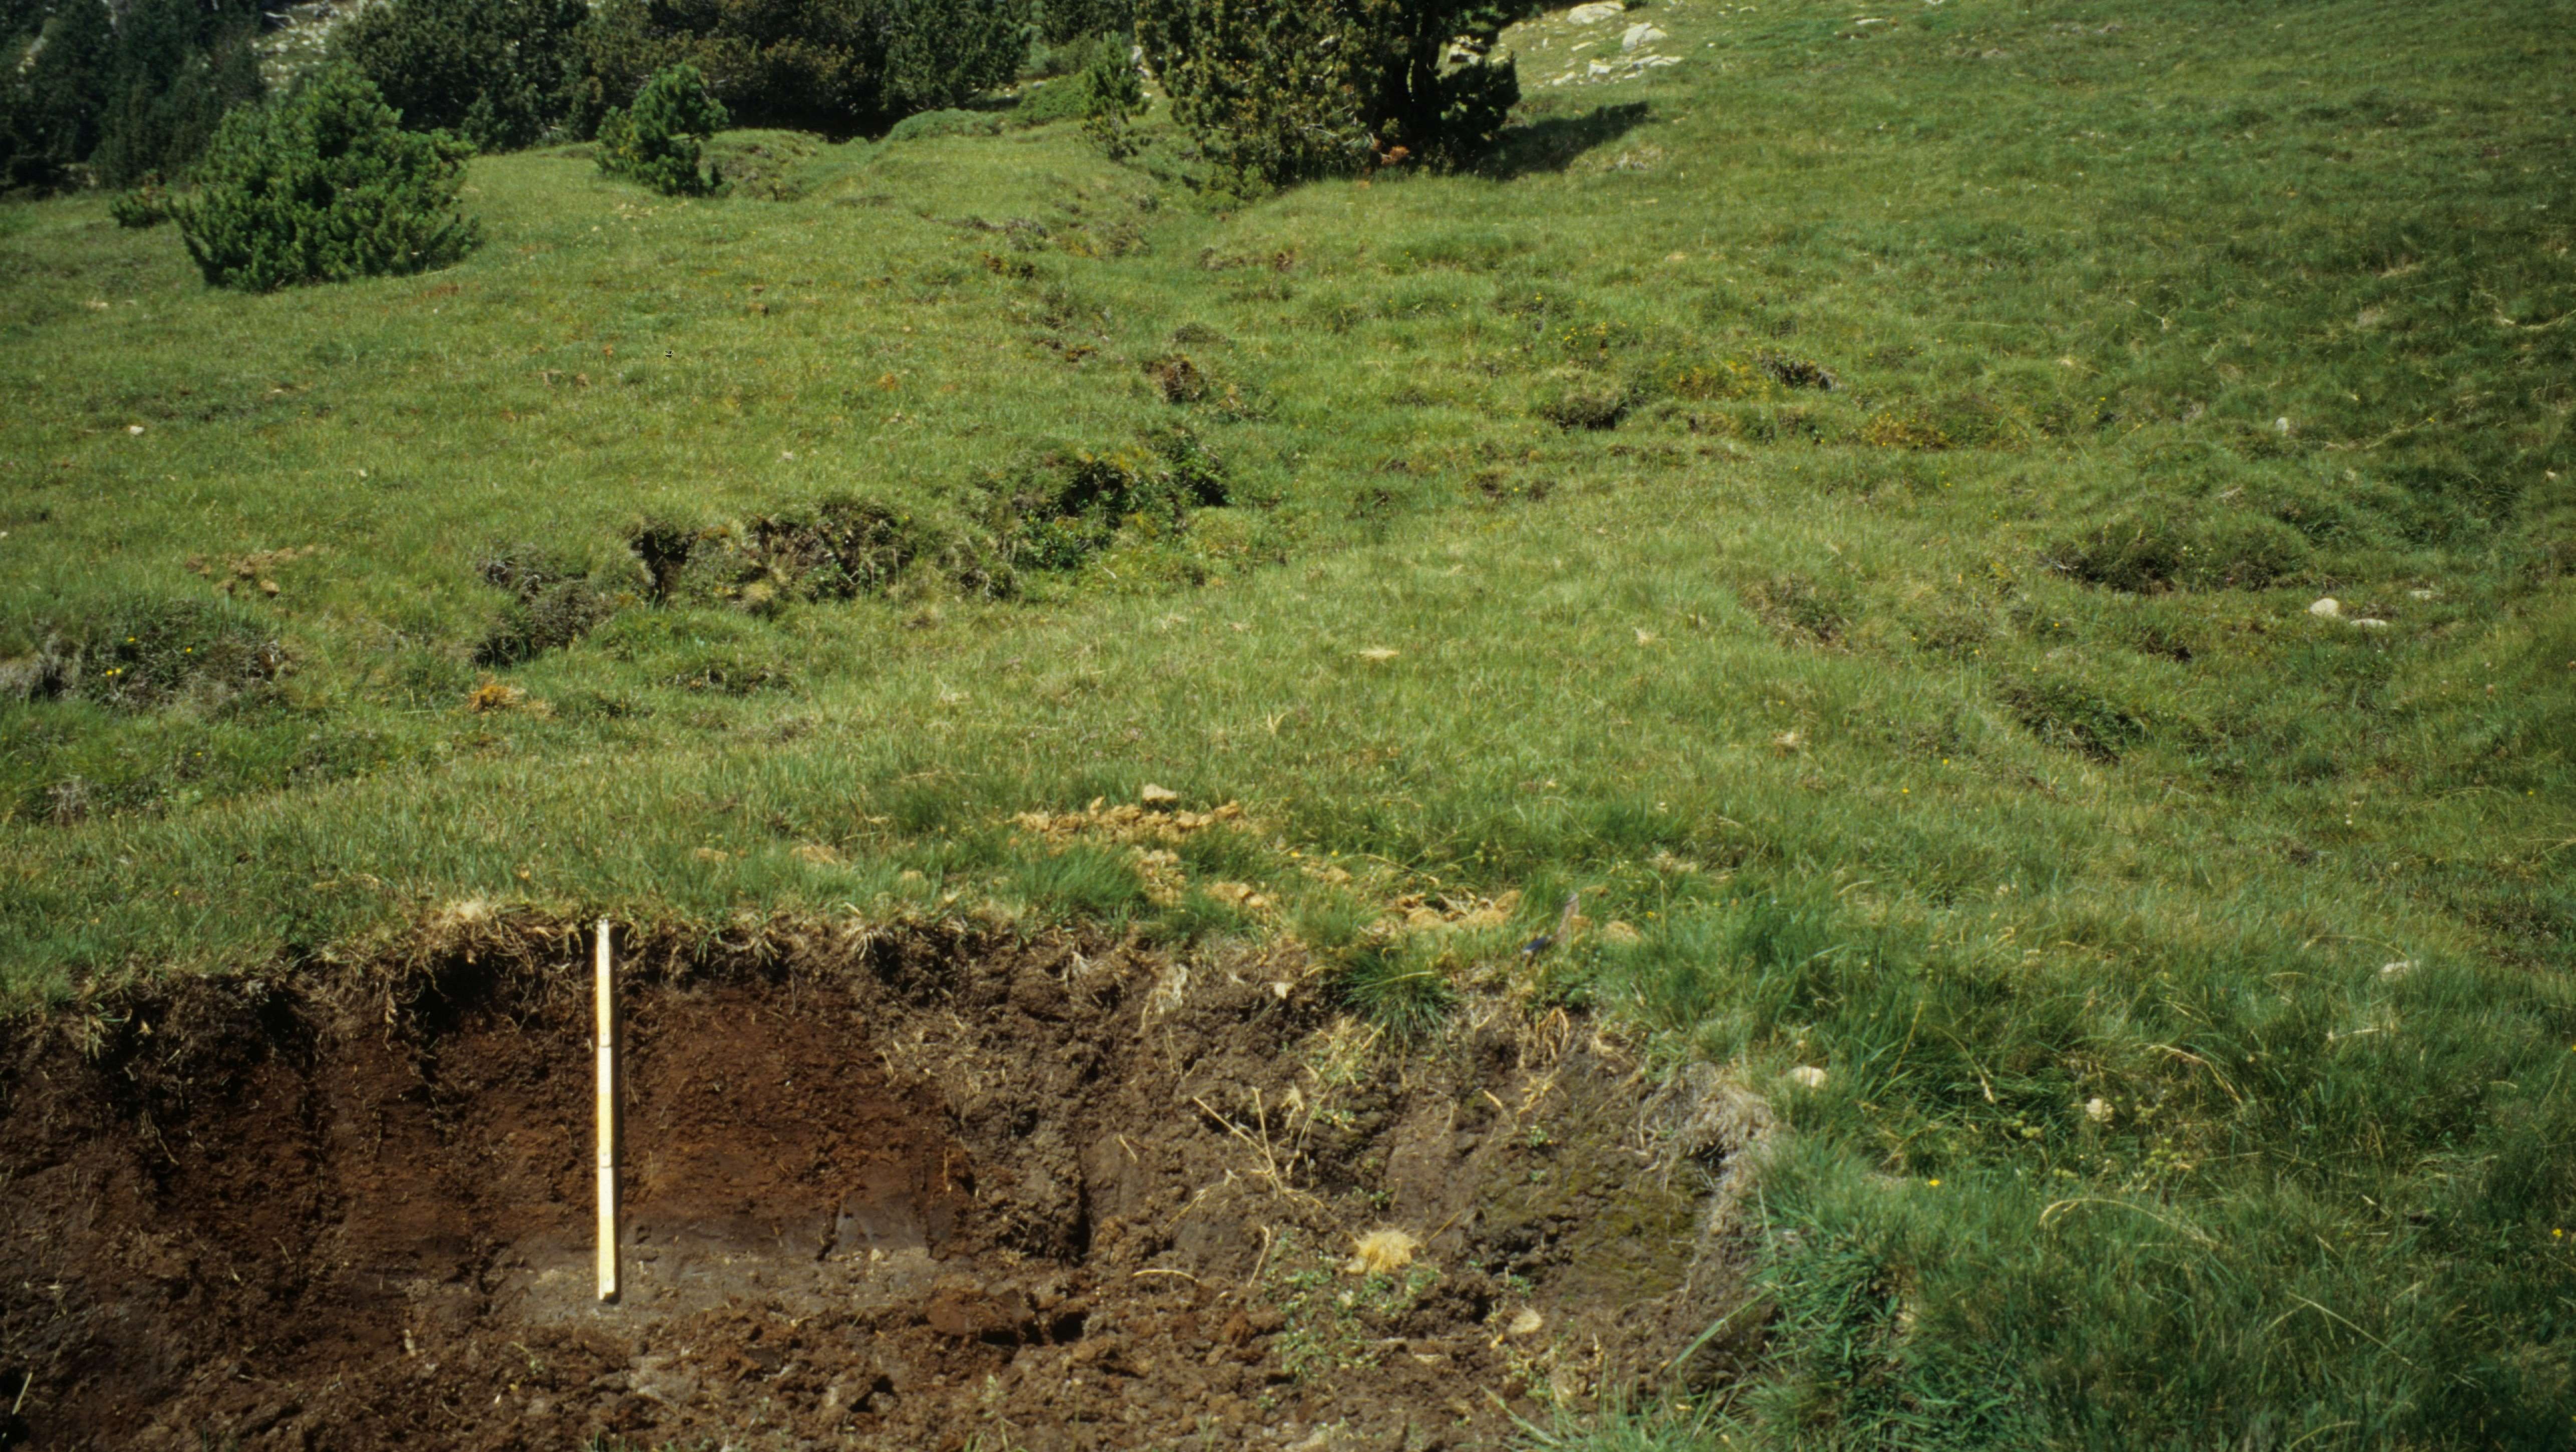 Problems of the Present: Soil Contamination and Depletion